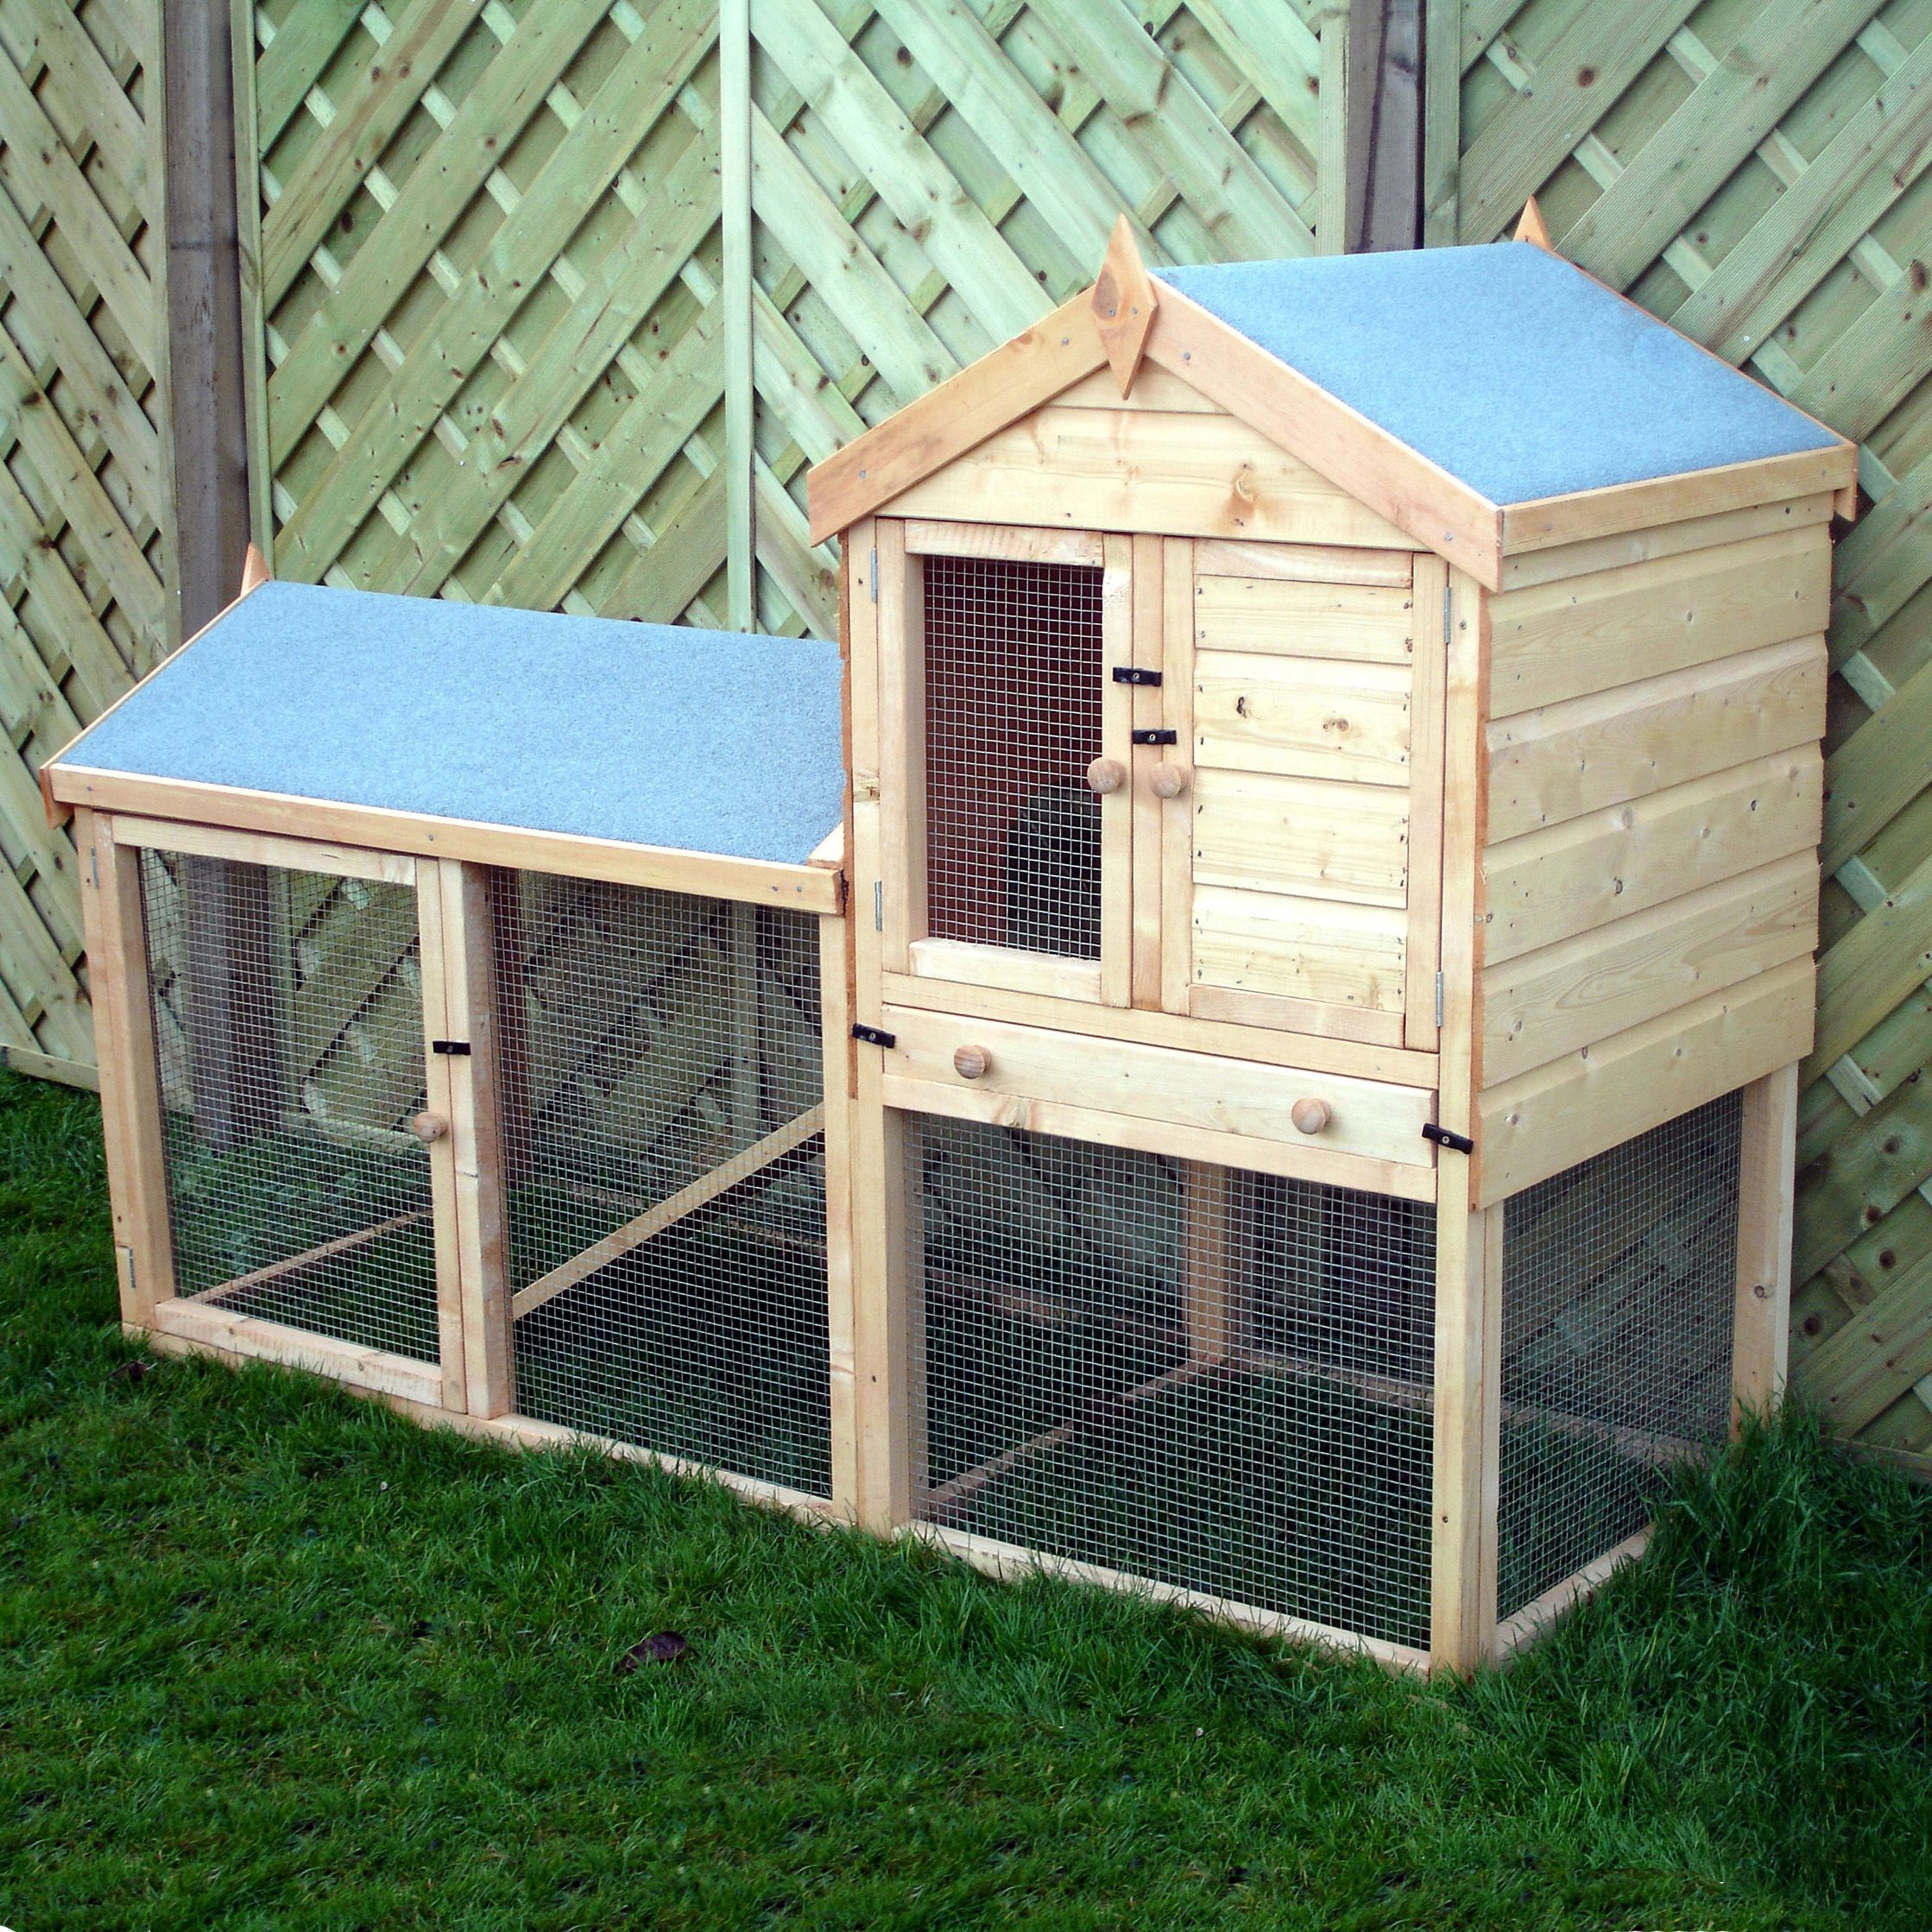 door all only wood treated for rabbit hutch pens catalog down screws no hutches opens metal solid small tall roof and with easy built nails wide access long front